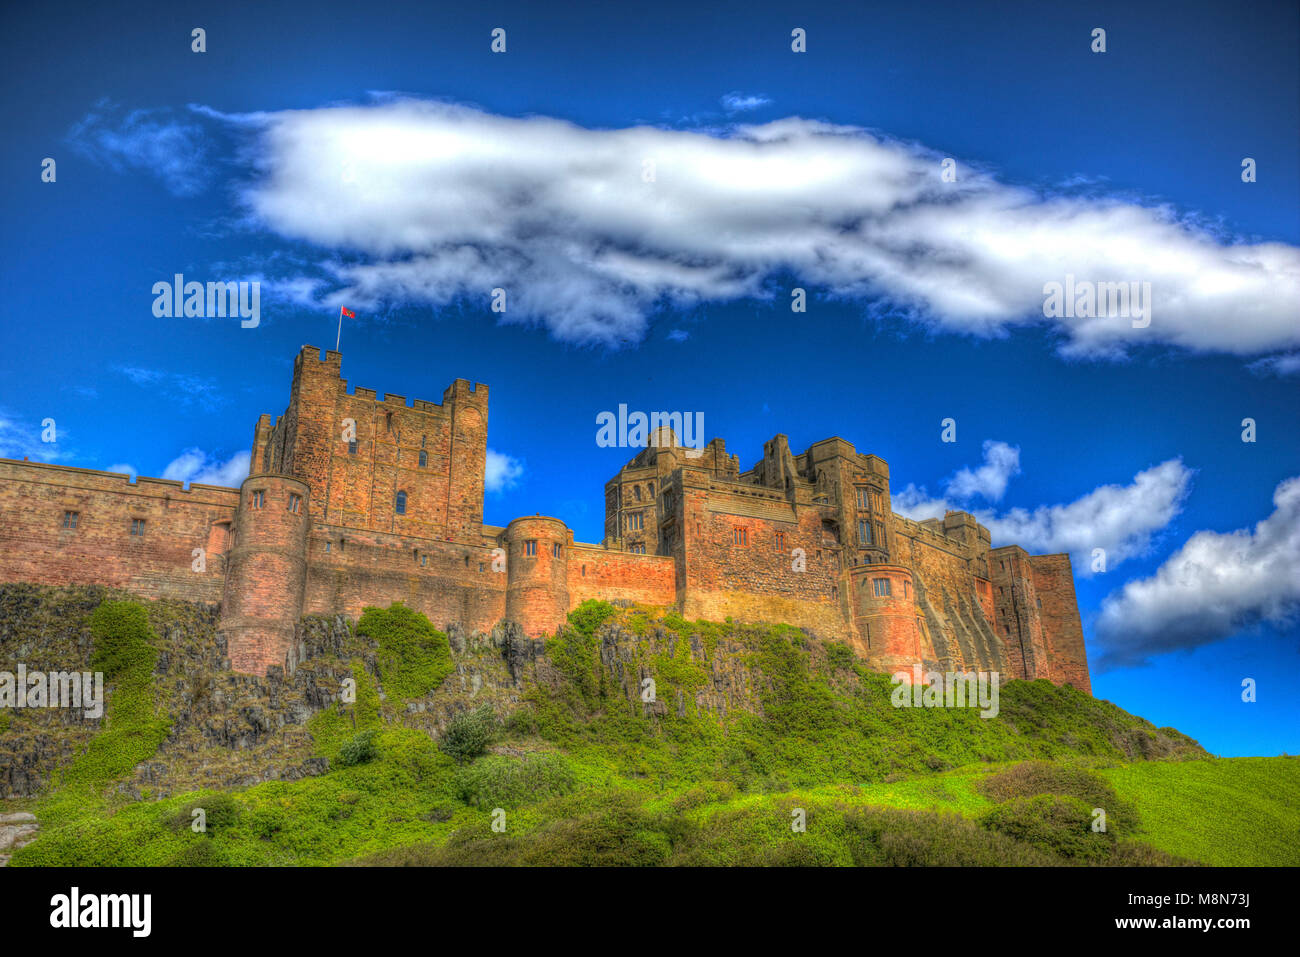 English medieval castle Bamburg Northumberland on hill in bright colourful hdr - Stock Image